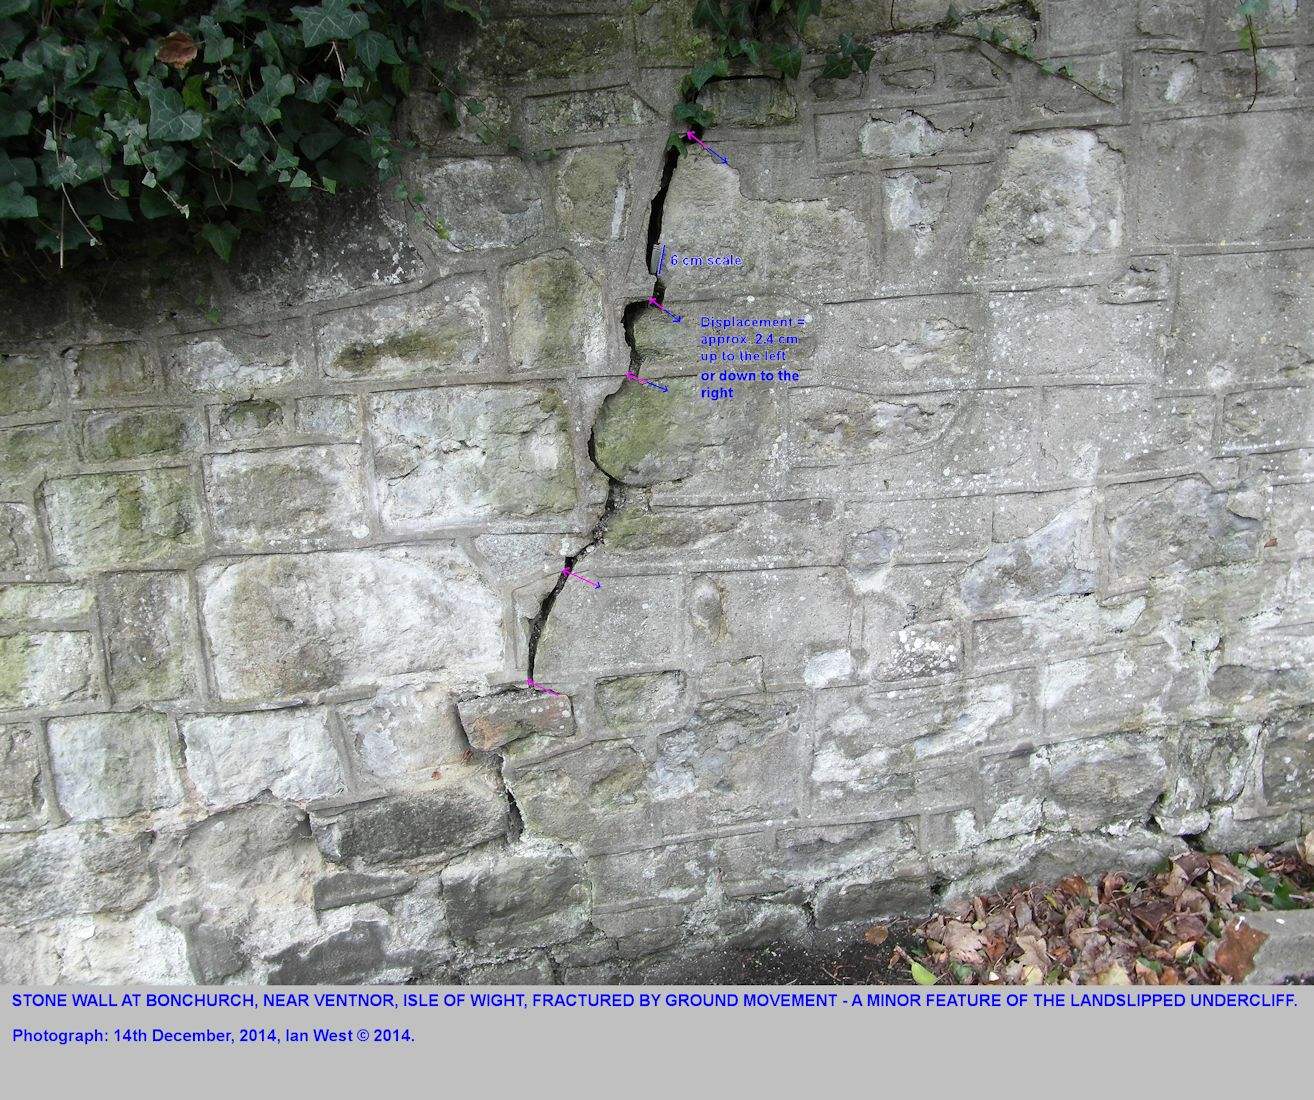 Small displacement in a fissure in a stone wall at Bonchurch village, Isle of Wight, possibly due to very small landslide movement, seen as at 14th December 2014